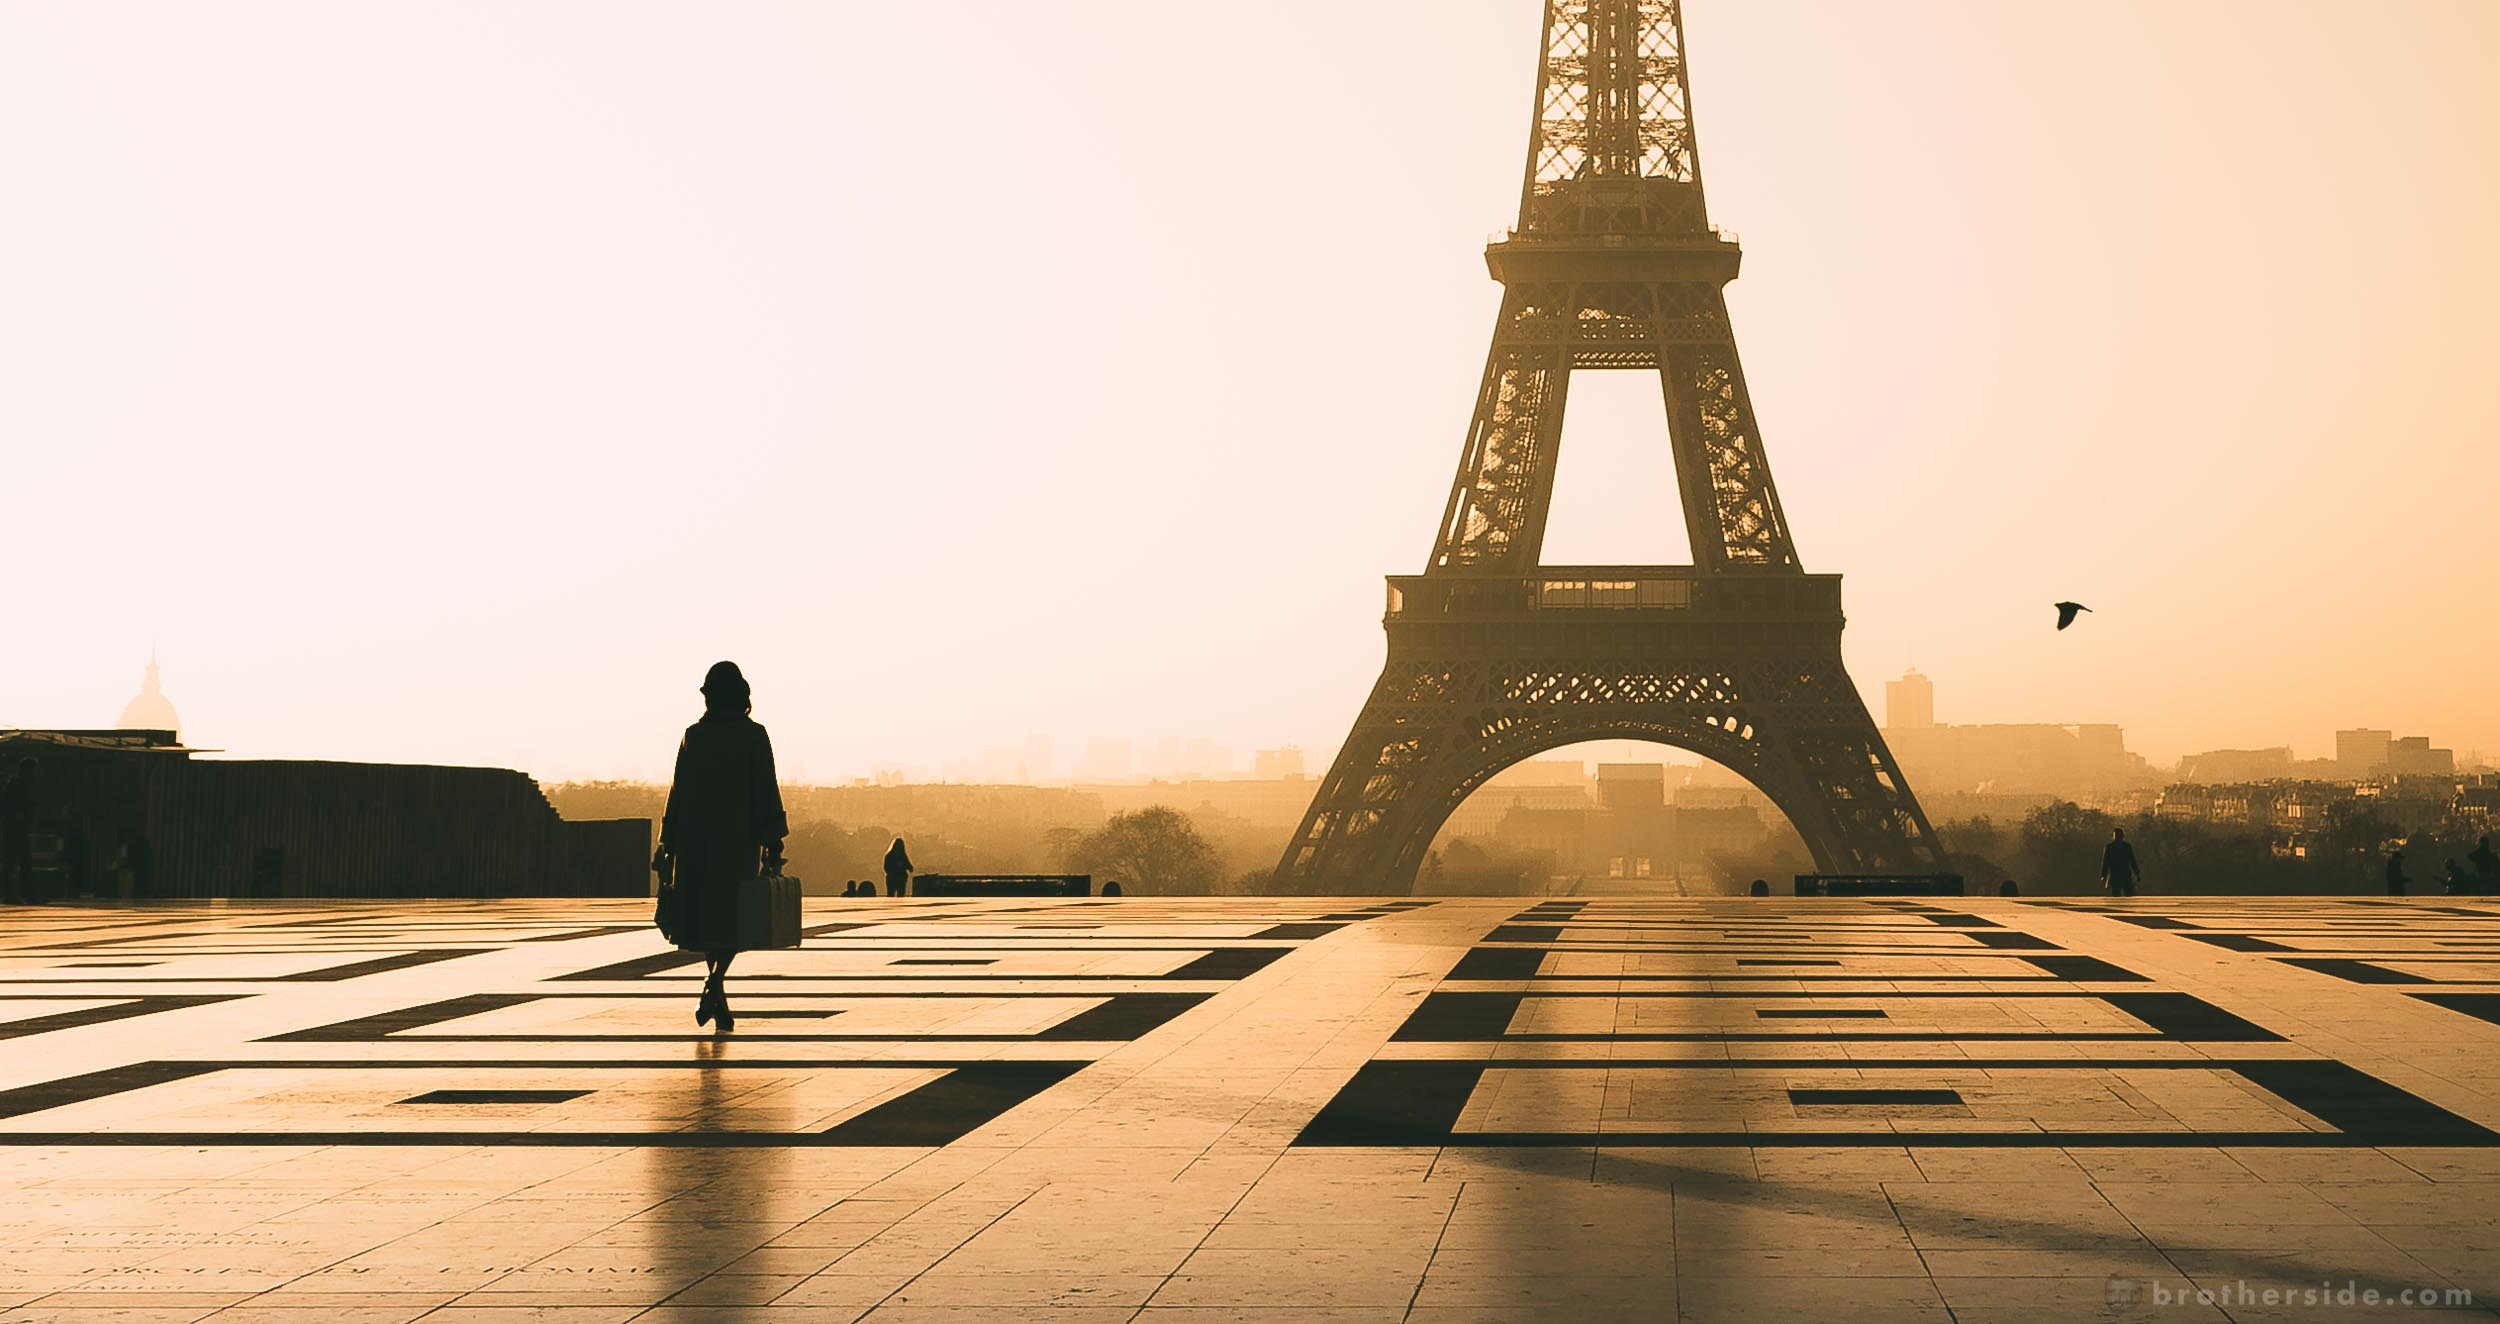 The Eiffel Tower Photo Guide - A hand-picked selection of best spots for capturing the Iron Lady